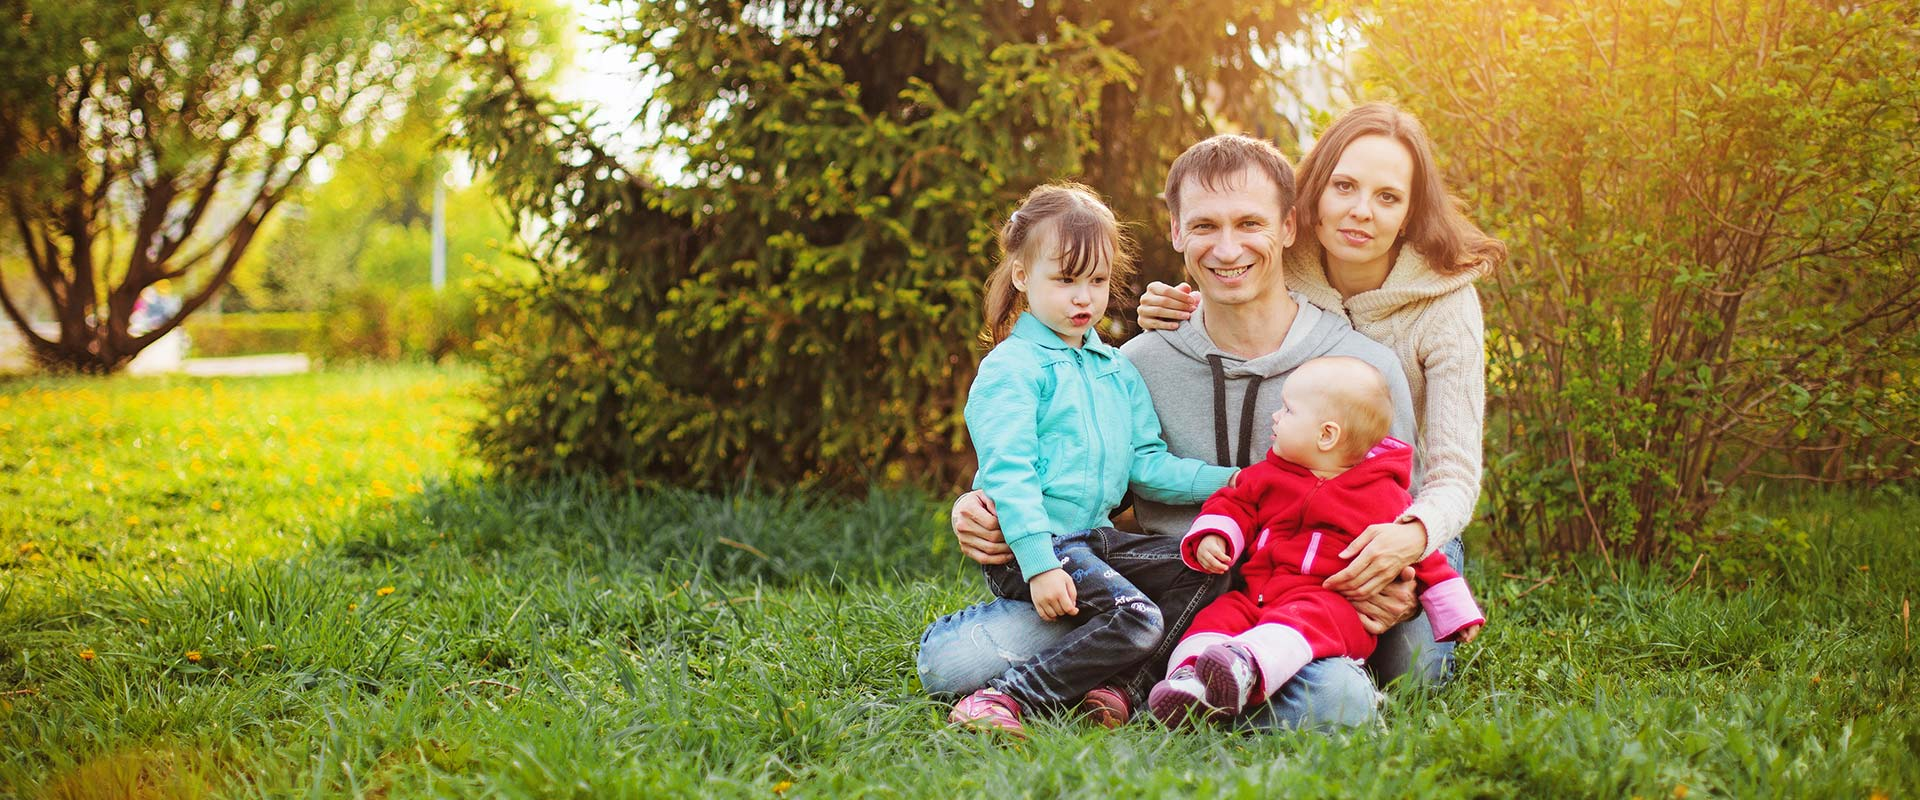 family on grass in park